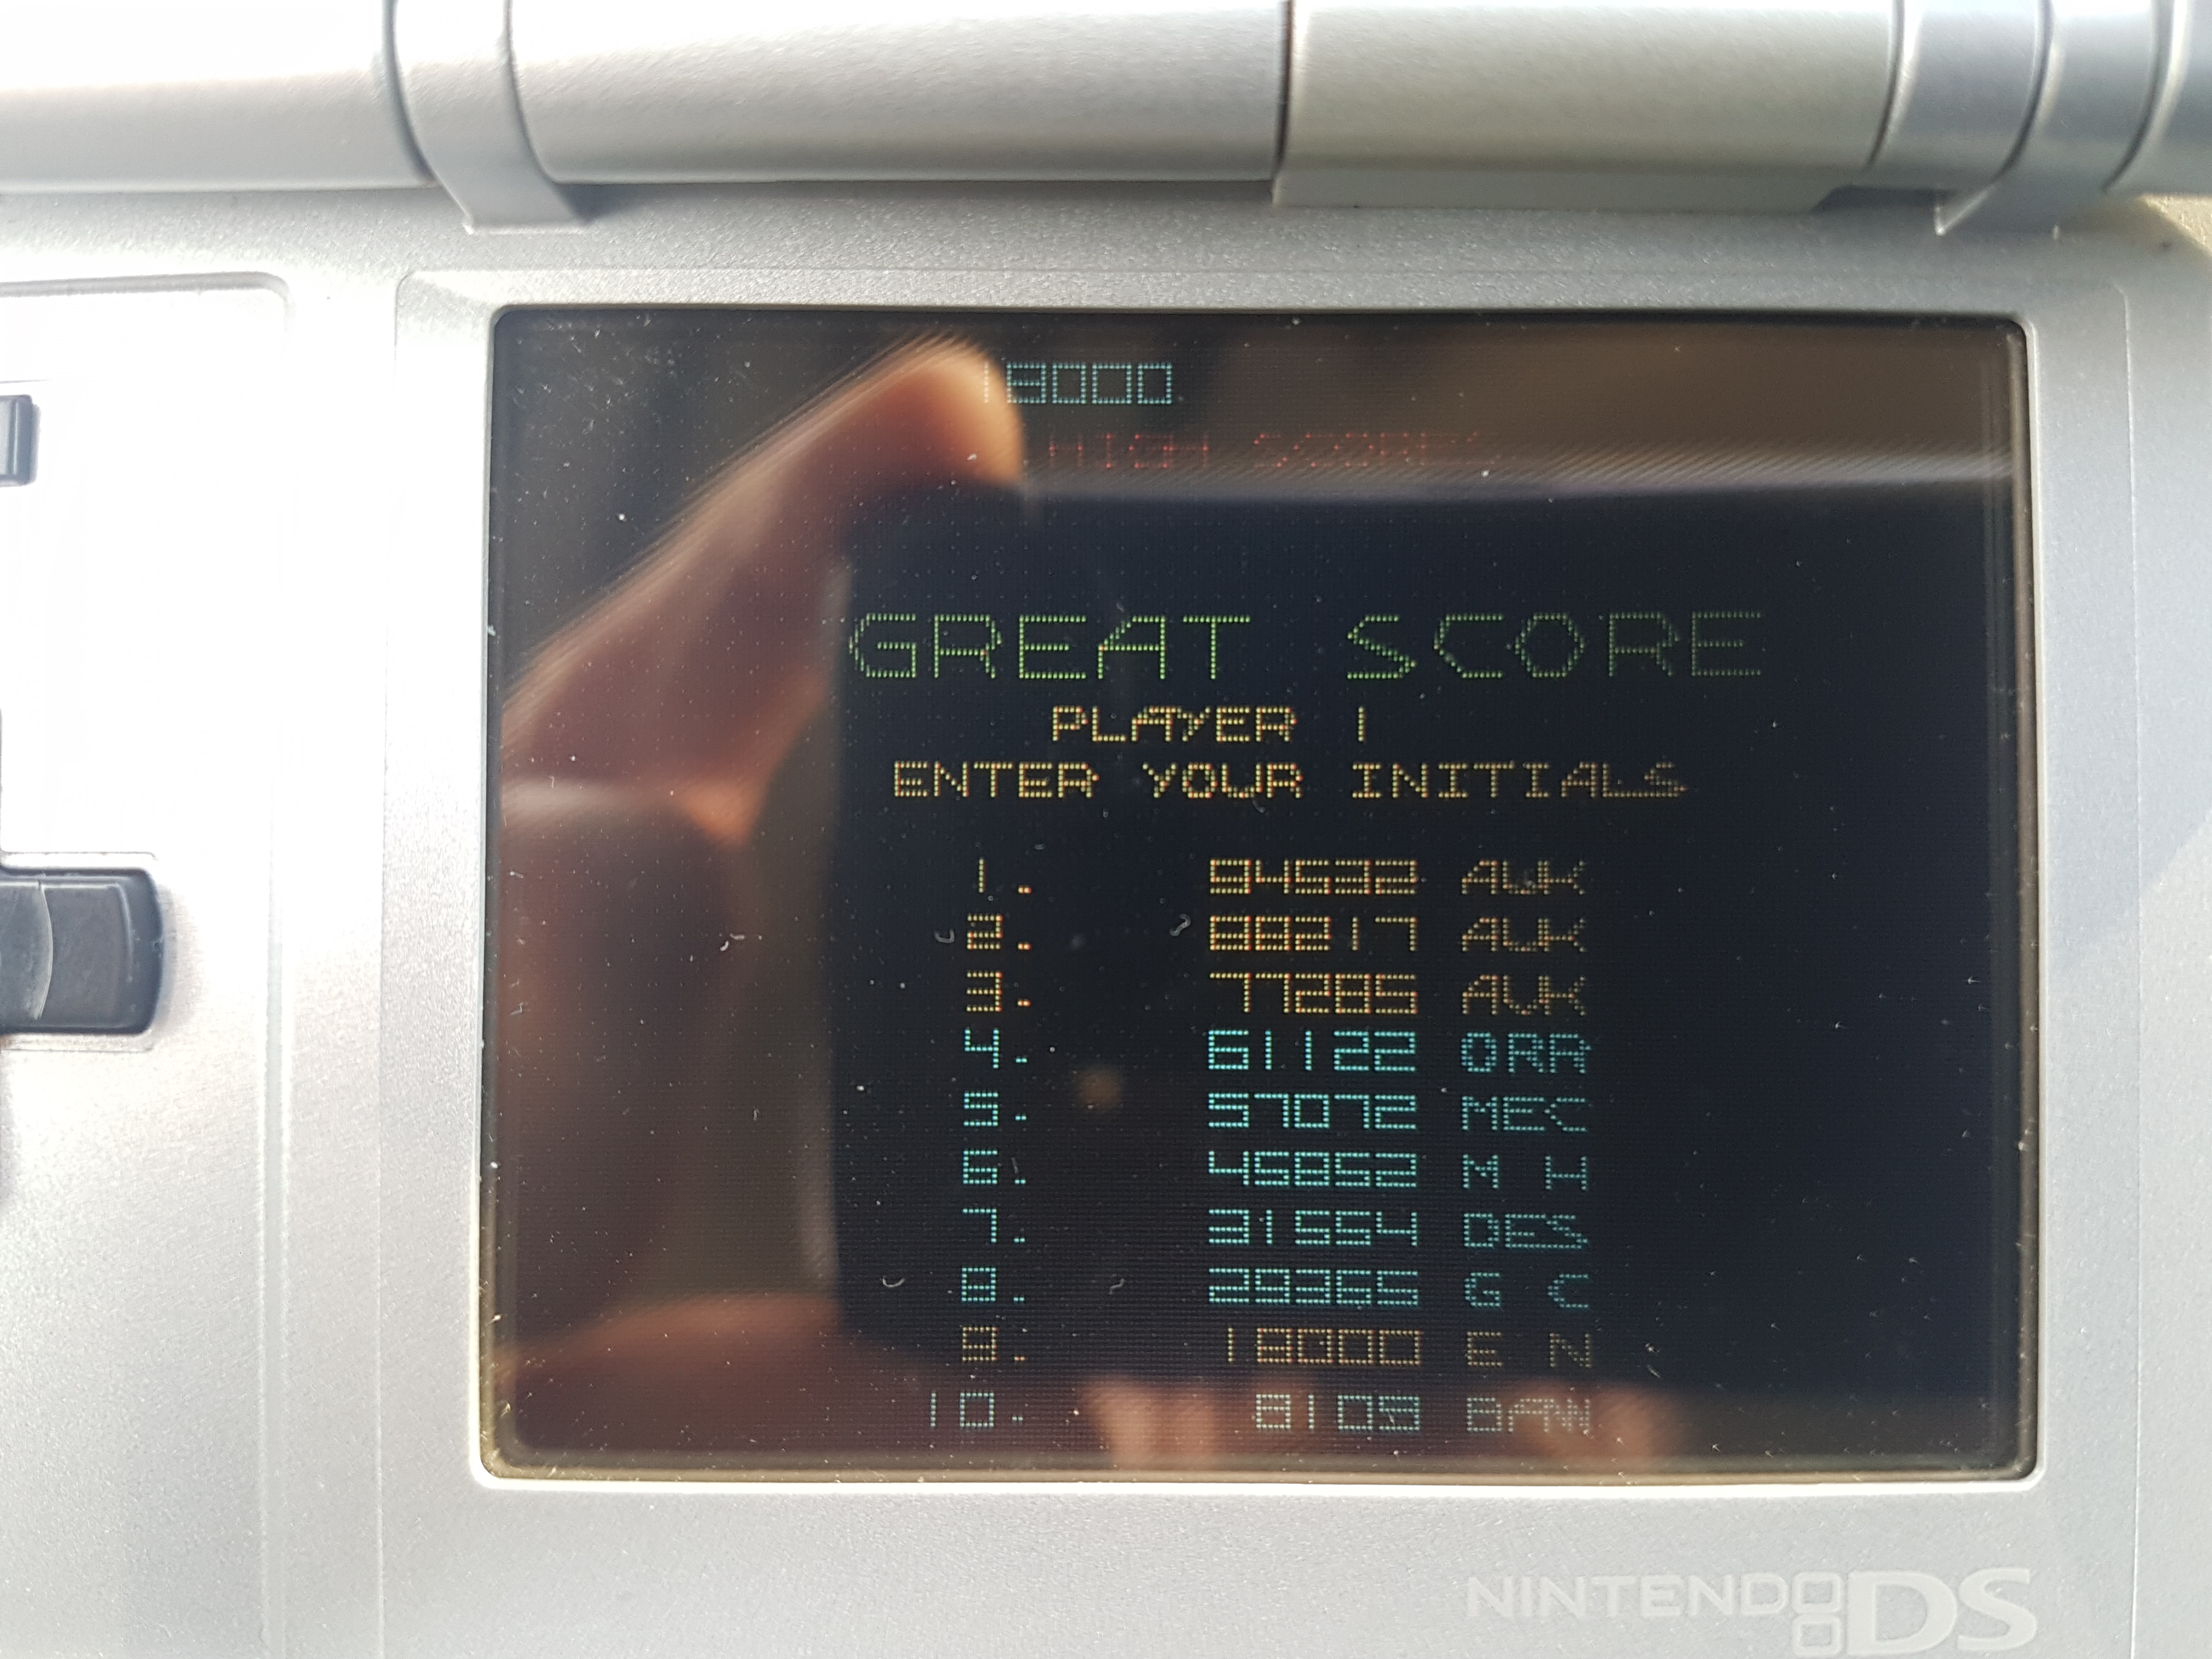 EddieNiceguy: Atari Greatest Hits: Volume 2: Major Havoc [Arcade] (Nintendo DS) 18,000 points on 2018-12-07 05:57:07